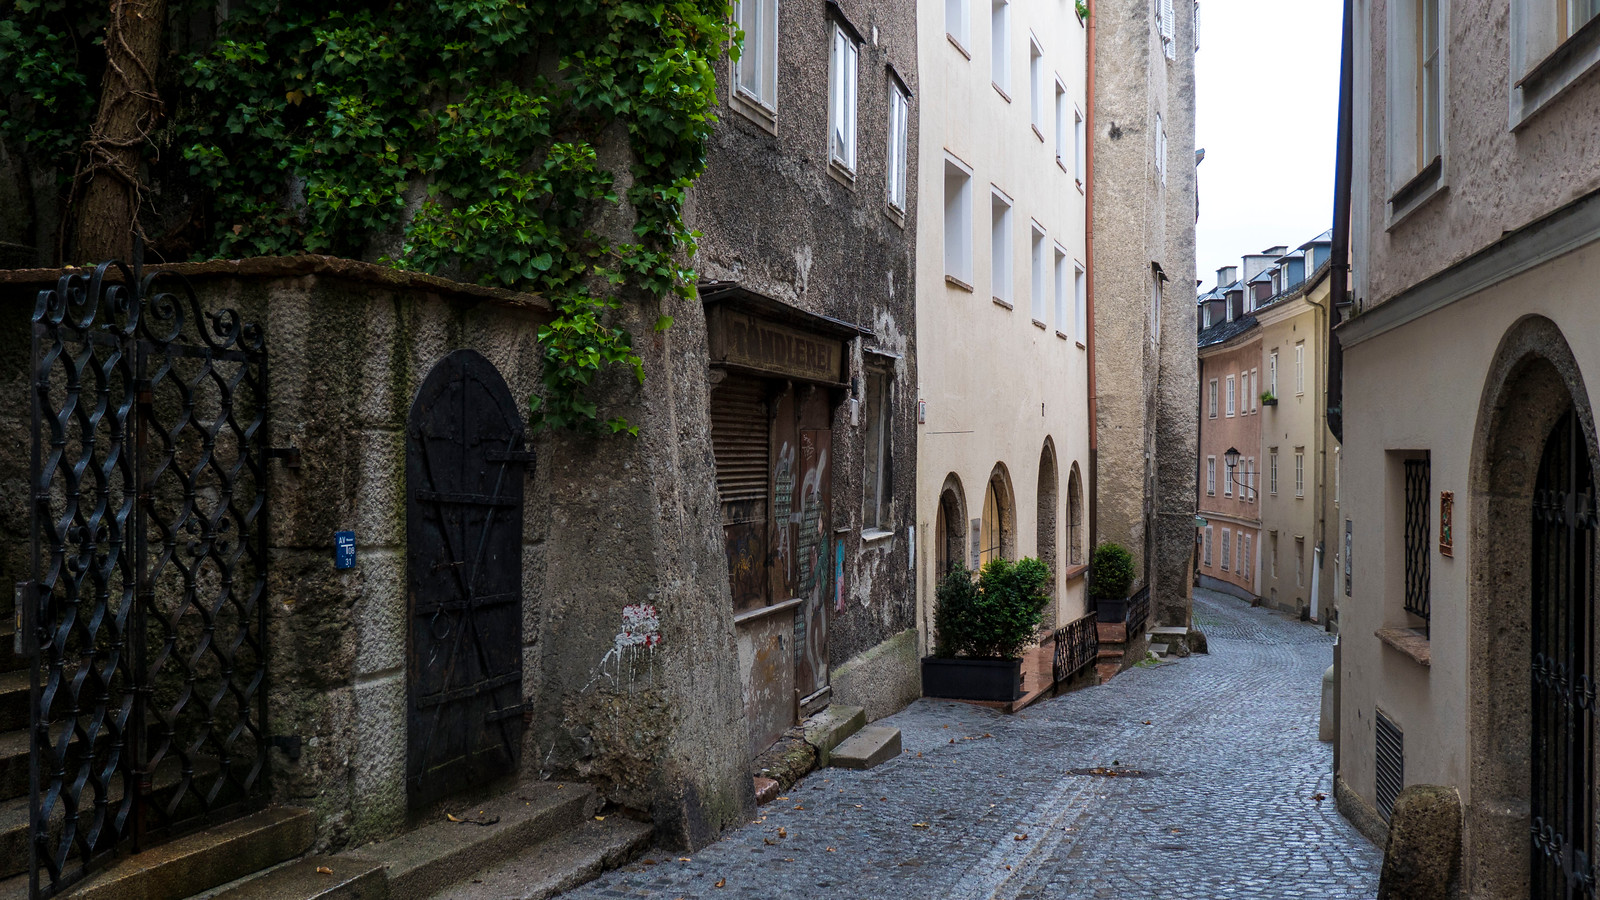 Steingasse in Salzburg - Oldest street in the city - Things to see in Salzburg - Places to go in Salzburg